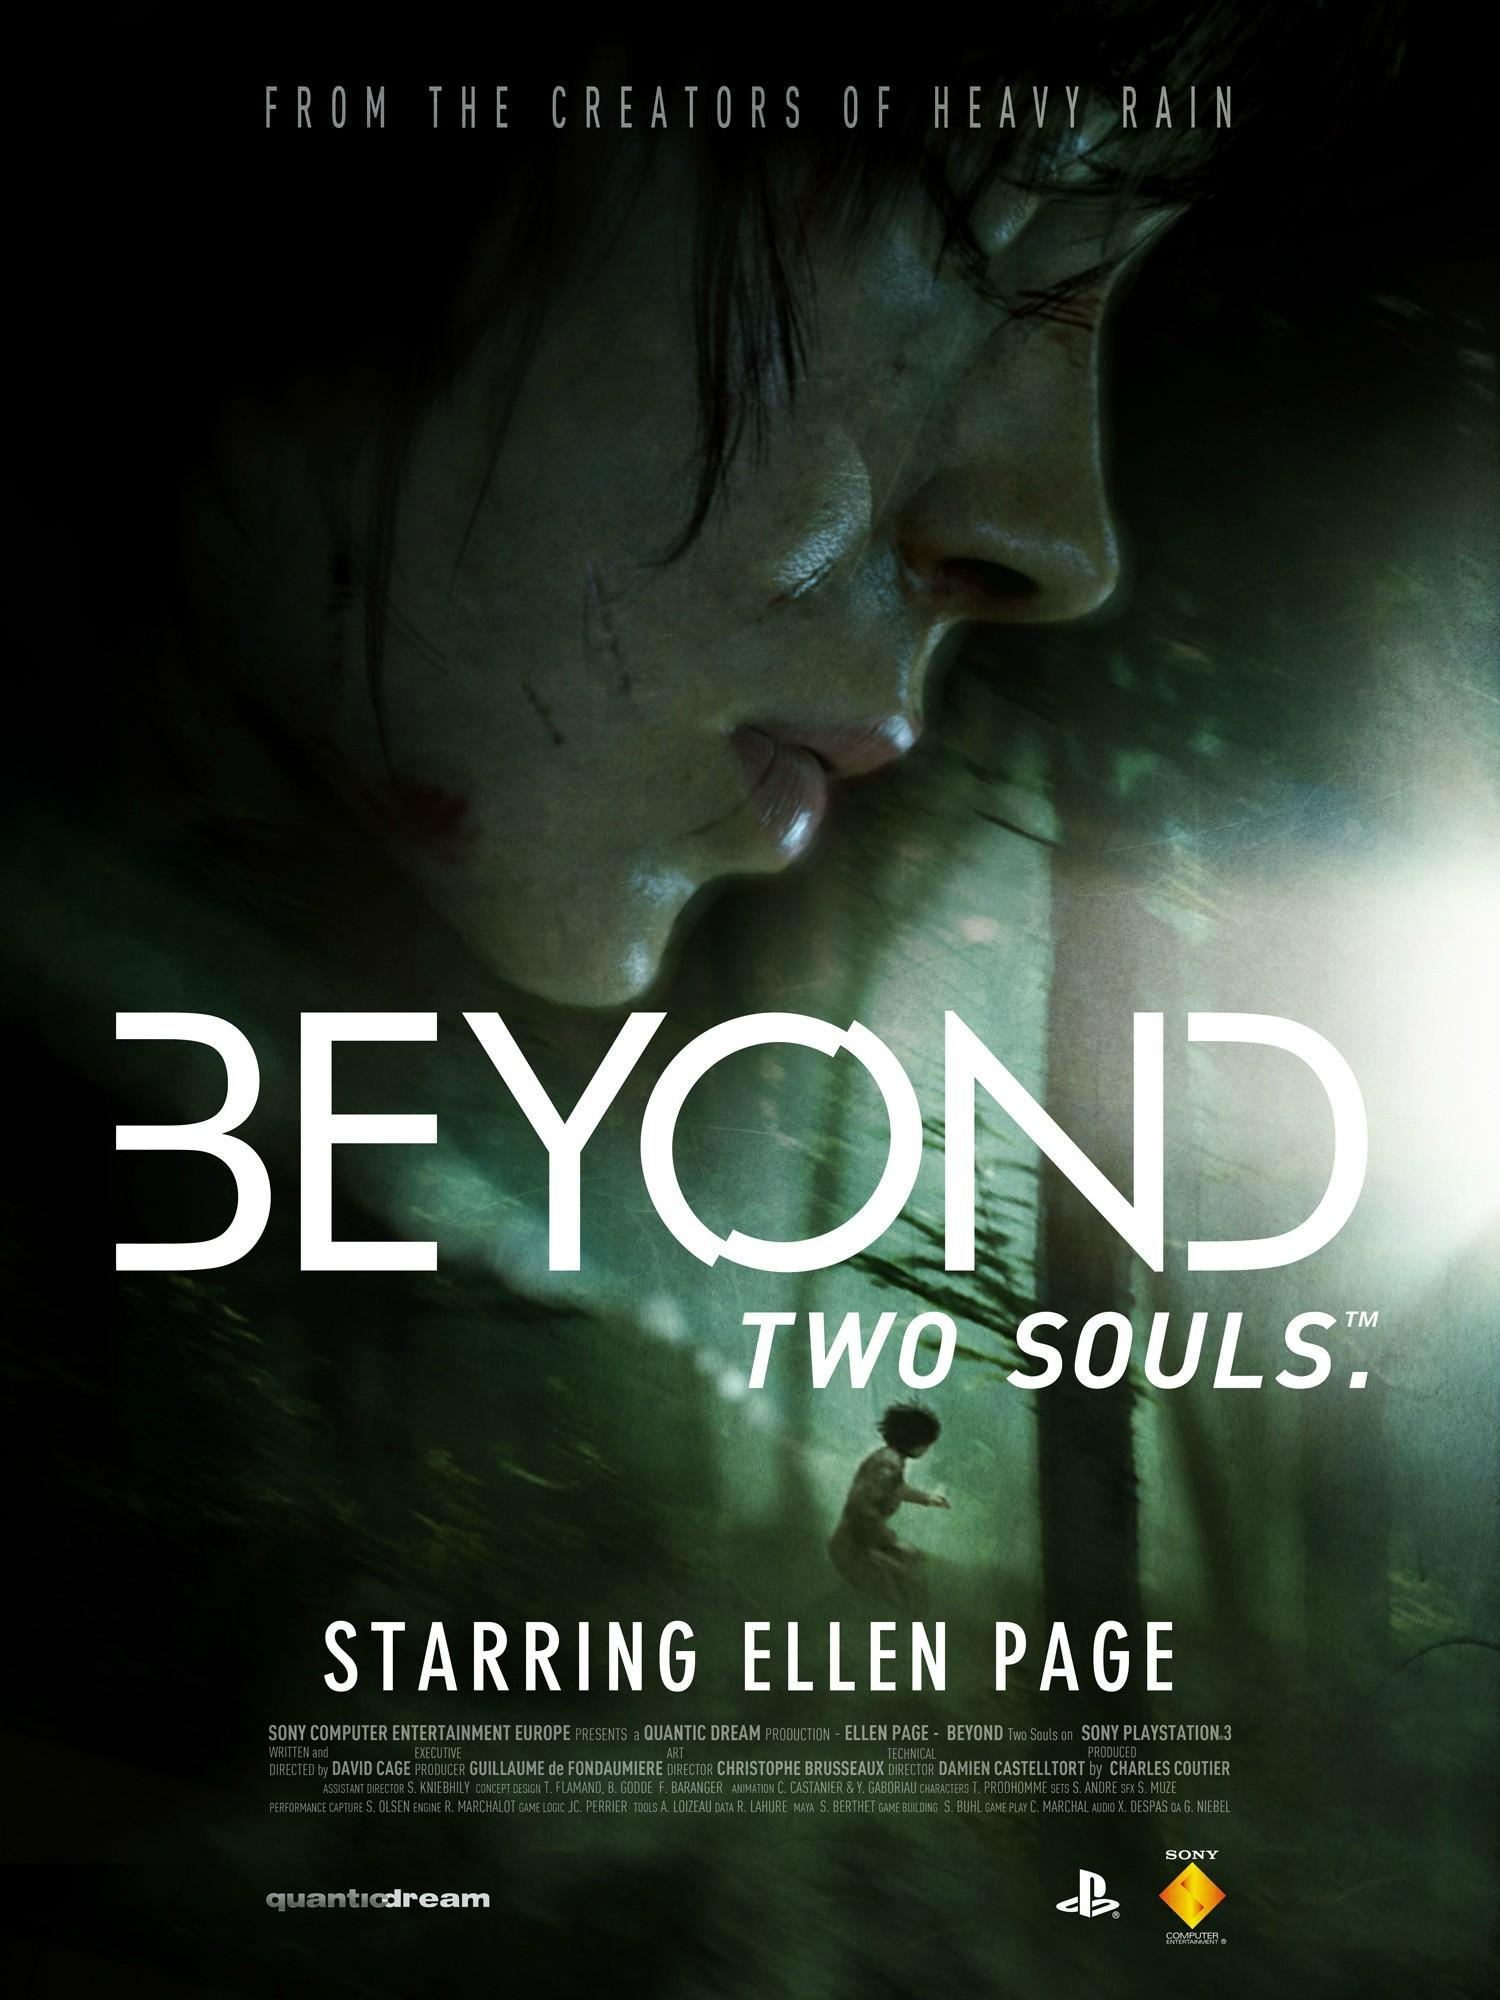 www.adventure-zone.info/fusion/images/beyond_two_souls_plakat_03.jpg